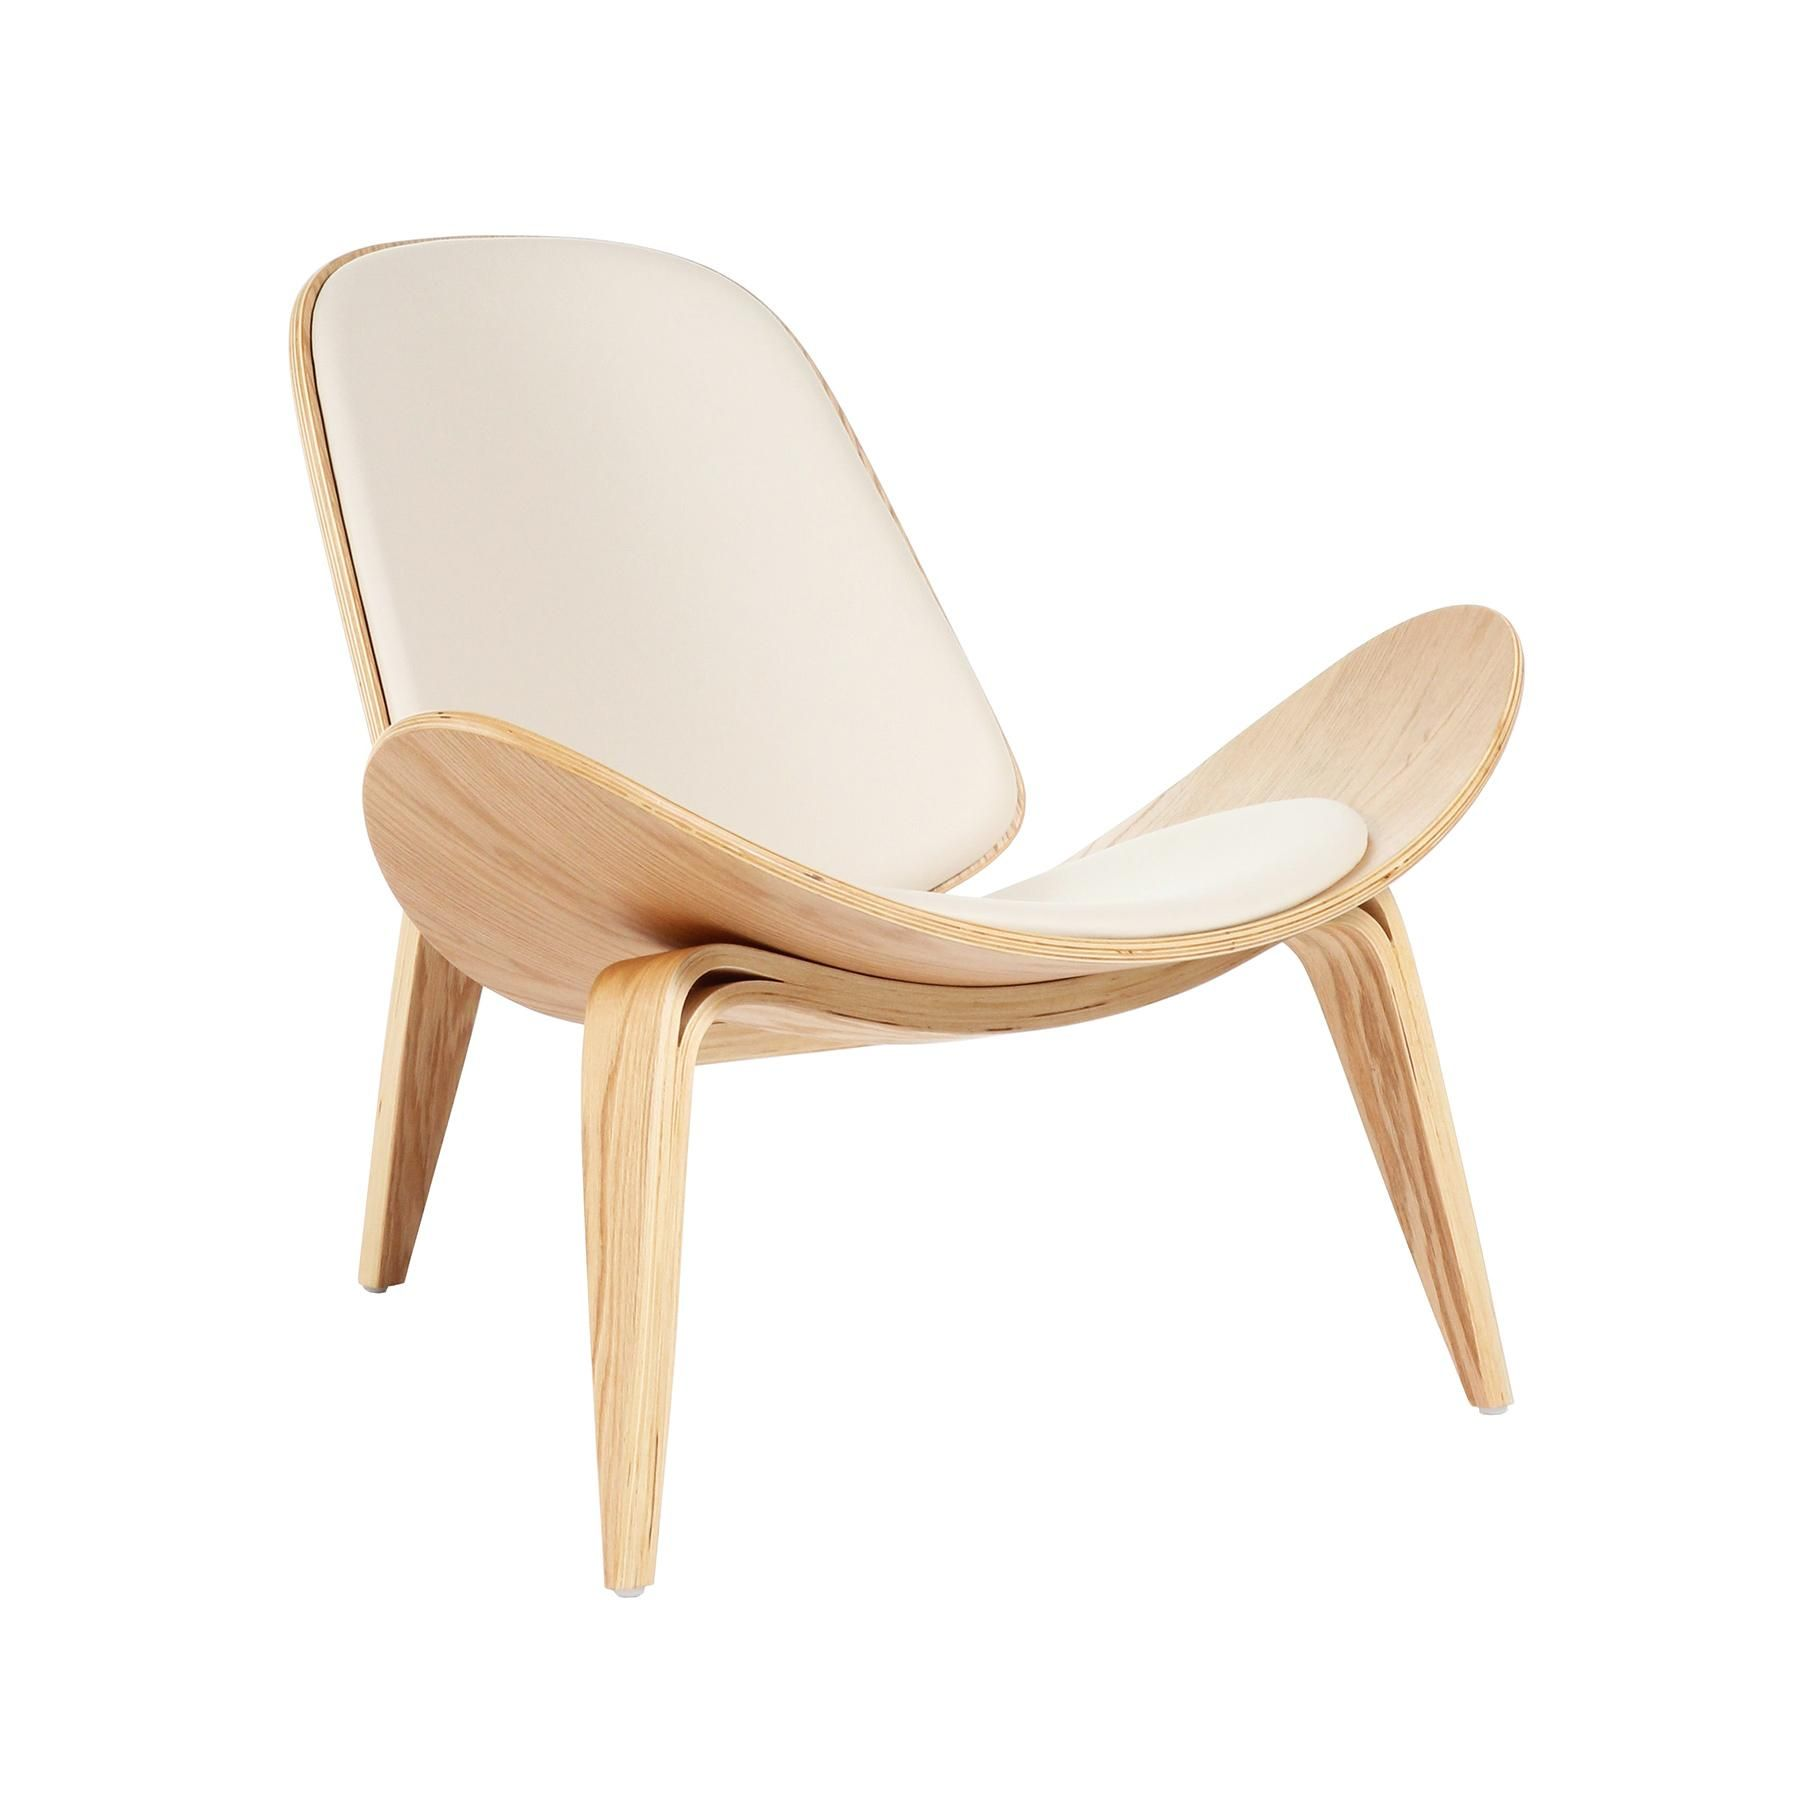 Control Brand Bishop Chair, White Iconic Design Features Wing Like Lines